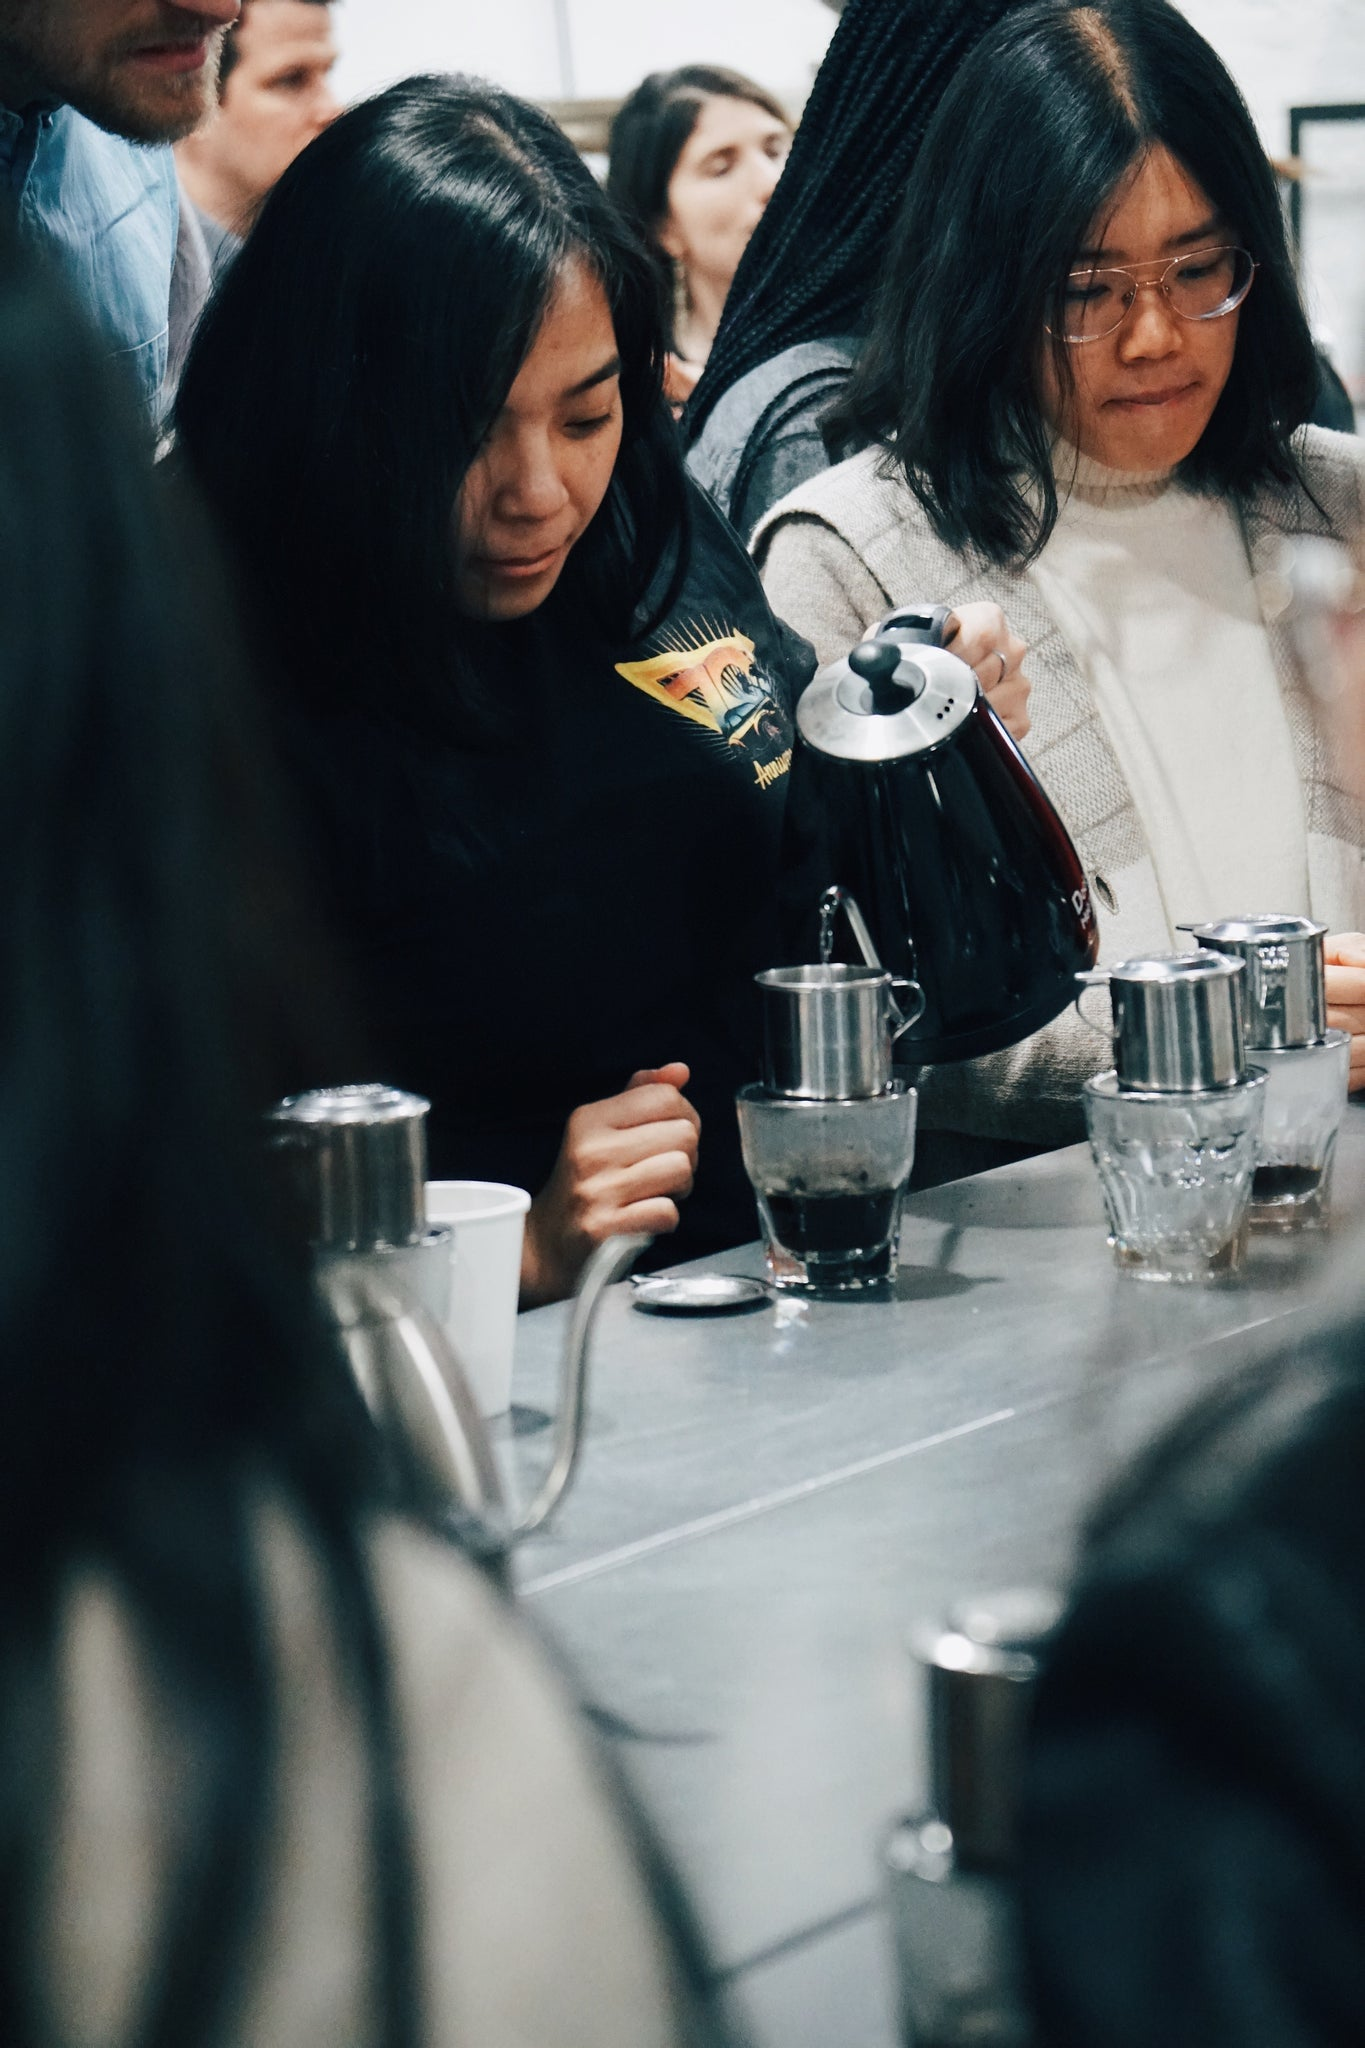 nguyen coffee supply vietnamese specialty culture sightglass female founder entrepreneur roasted brooklyn leadership